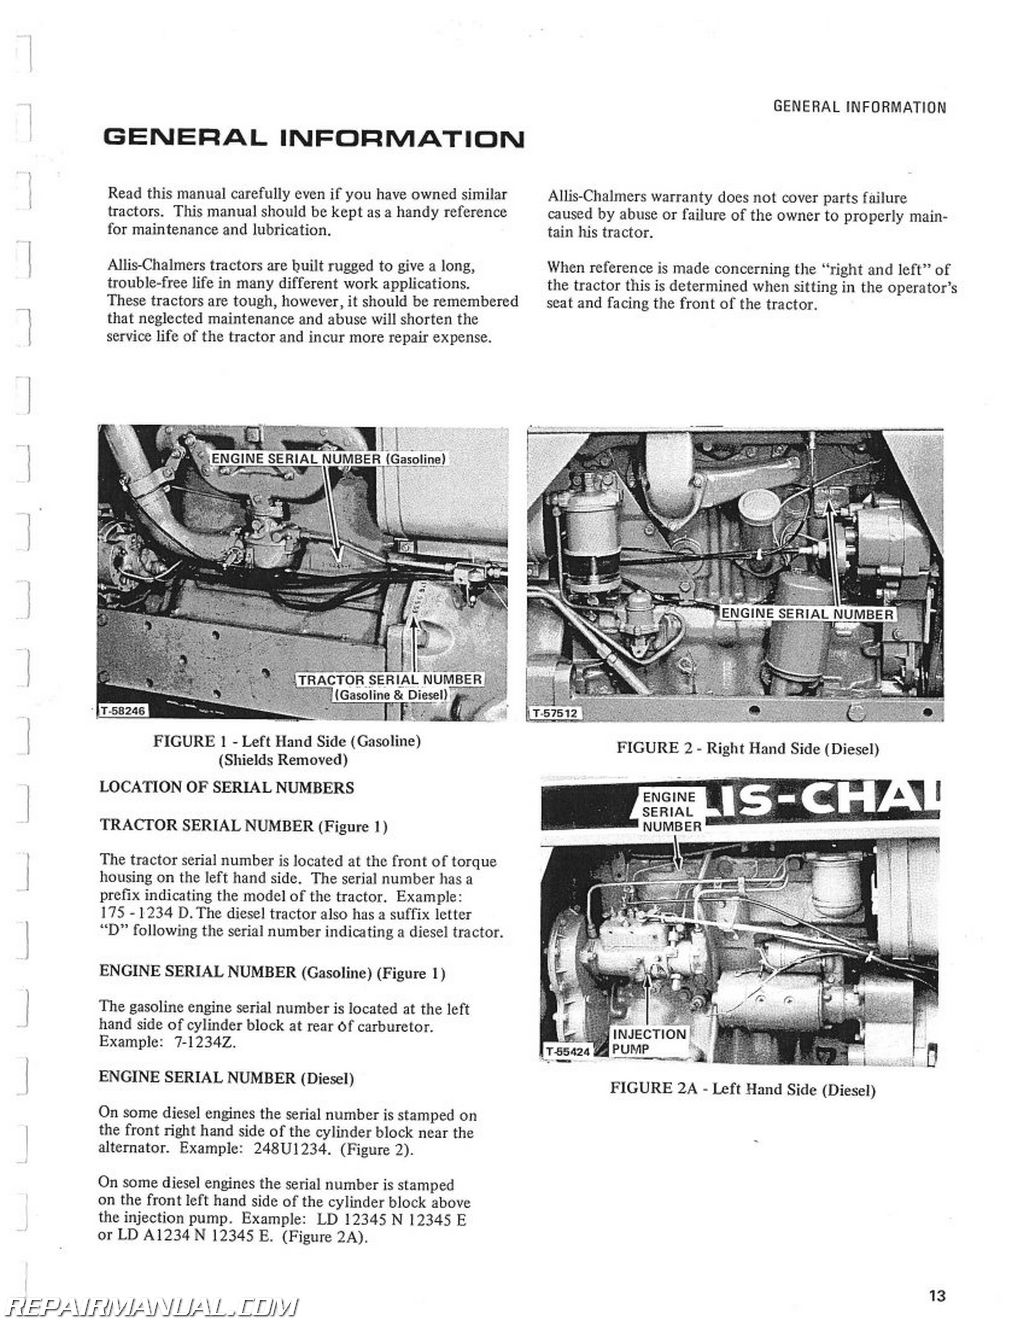 allis chalmers model b wiring diagram brake control engine